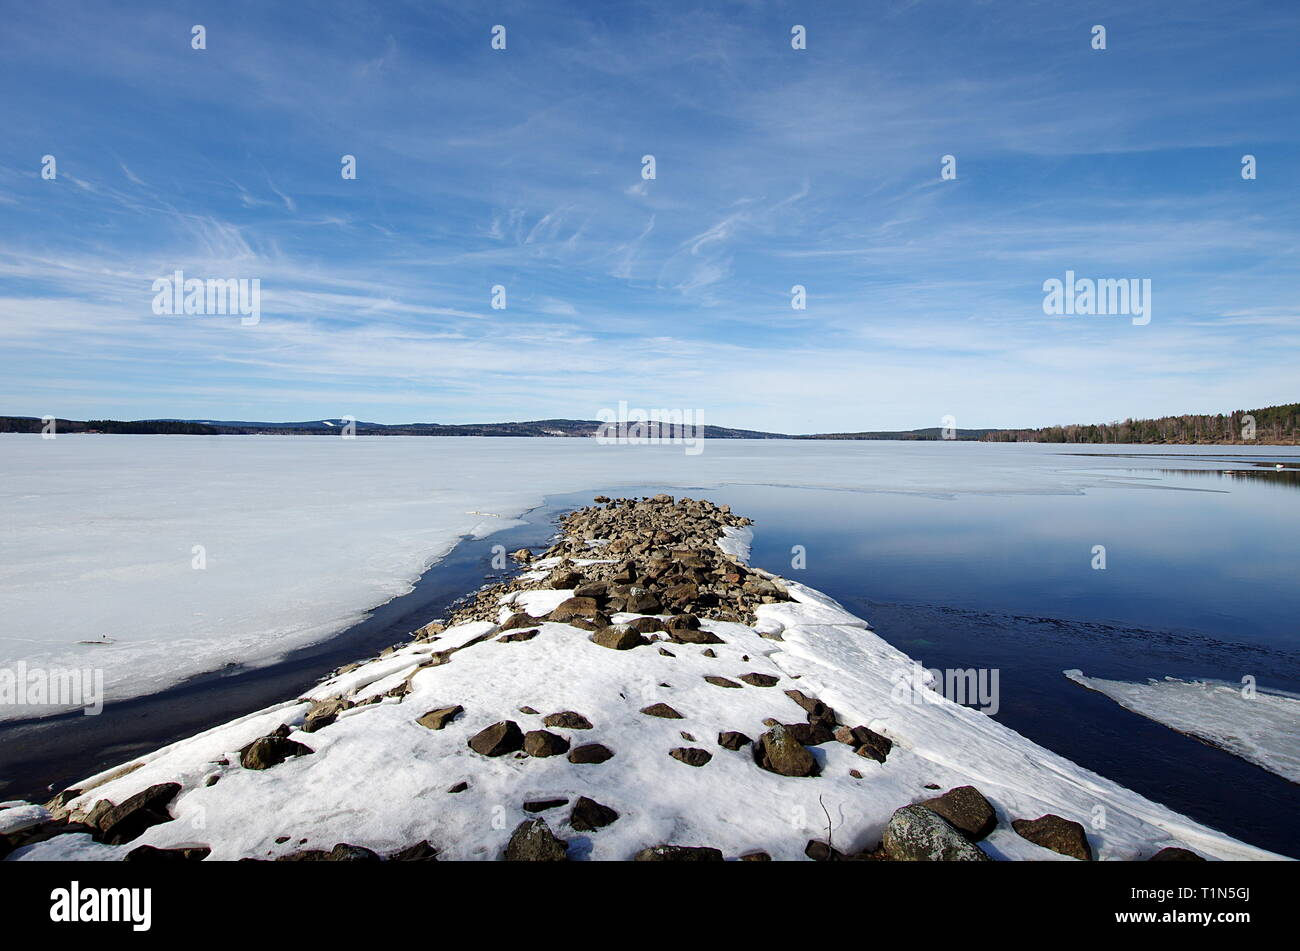 Ice on lakes are melting and trees are growing again,spring is in the air. - Stock Image